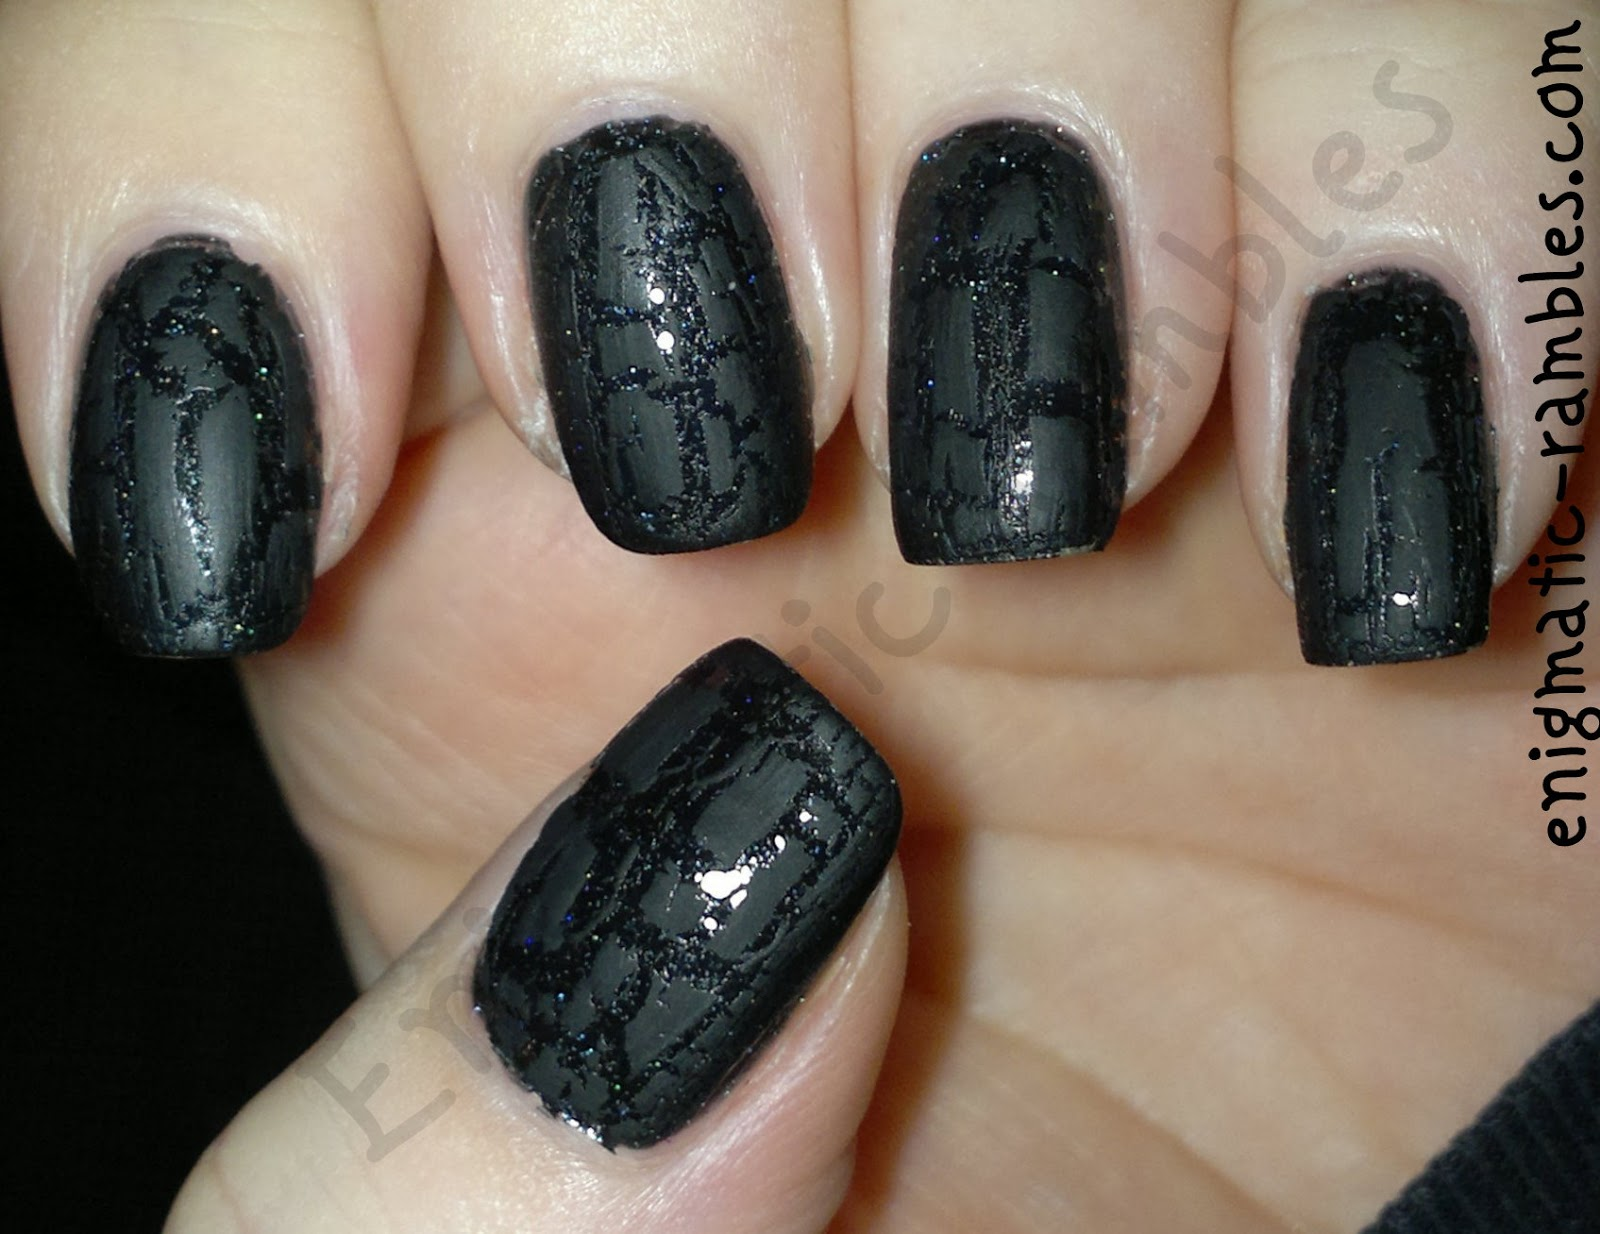 matte-holo-glitter-crackle-nails-barry-m-black-multi-instant-nail-effect